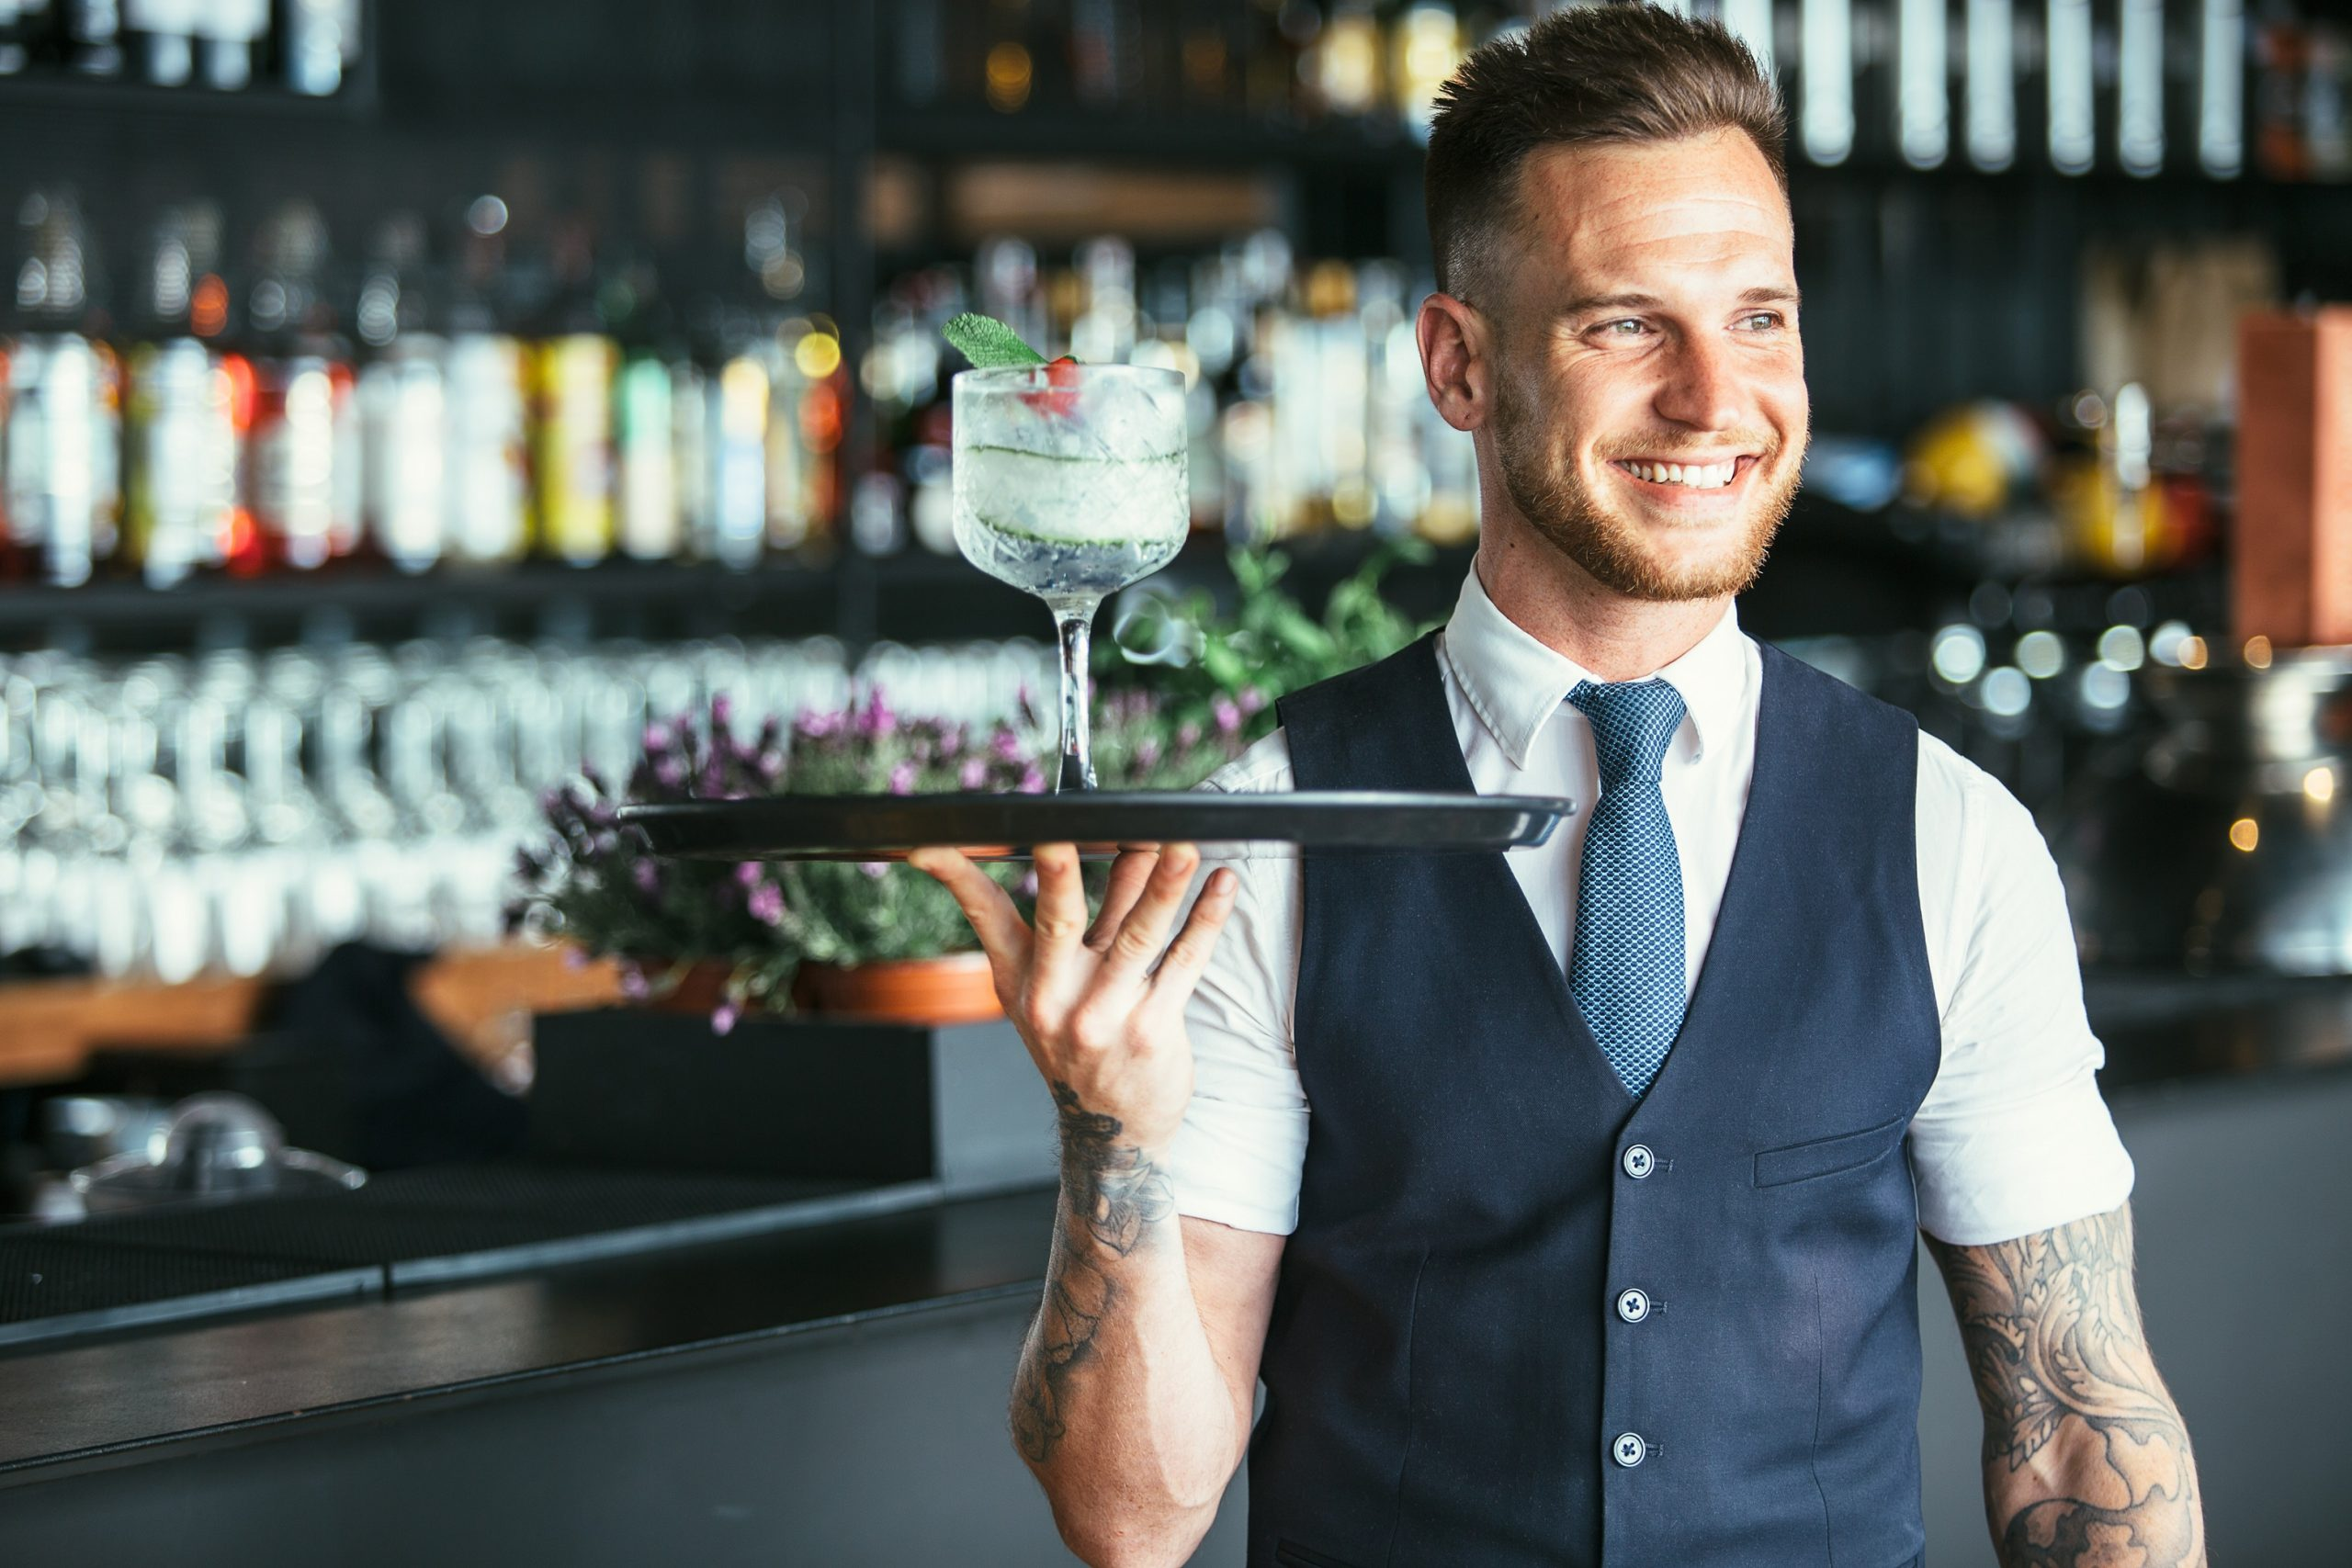 Seeking jobs in hospitality with Richard Hands